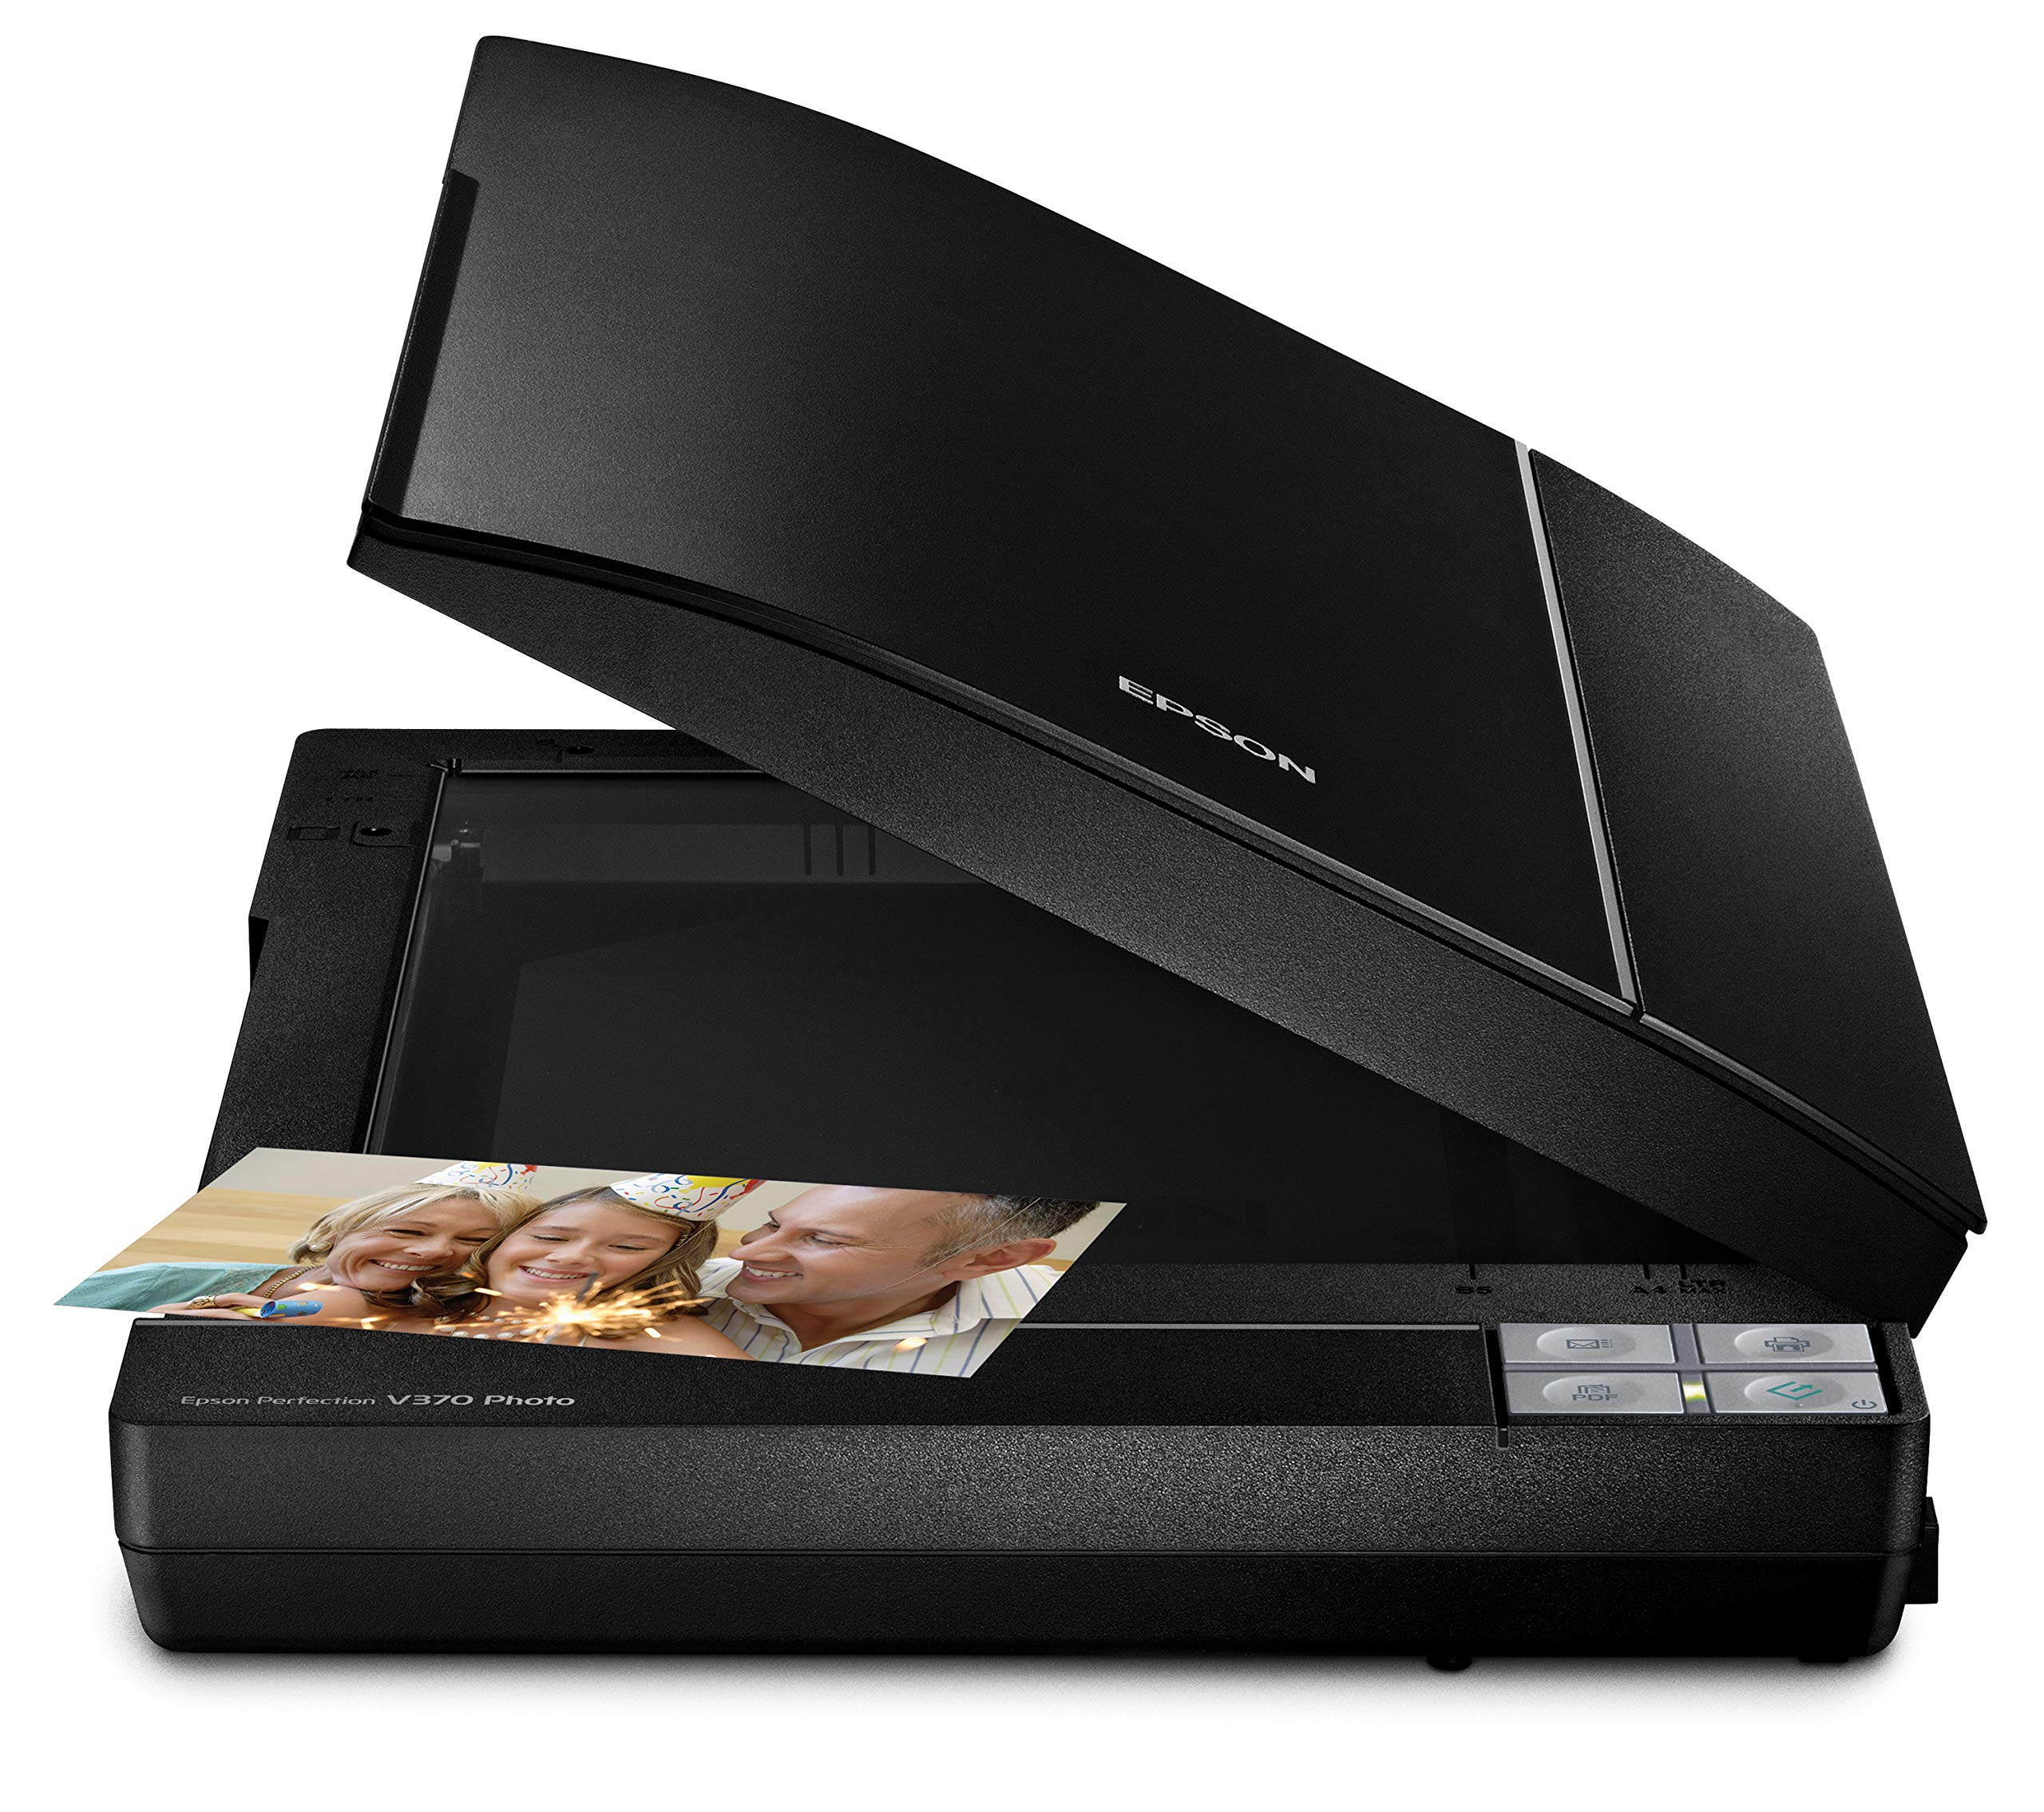 Epson B11B207221 Perfection V370 Color Photo, Image, Film, Negative & Document Scanner by Epson